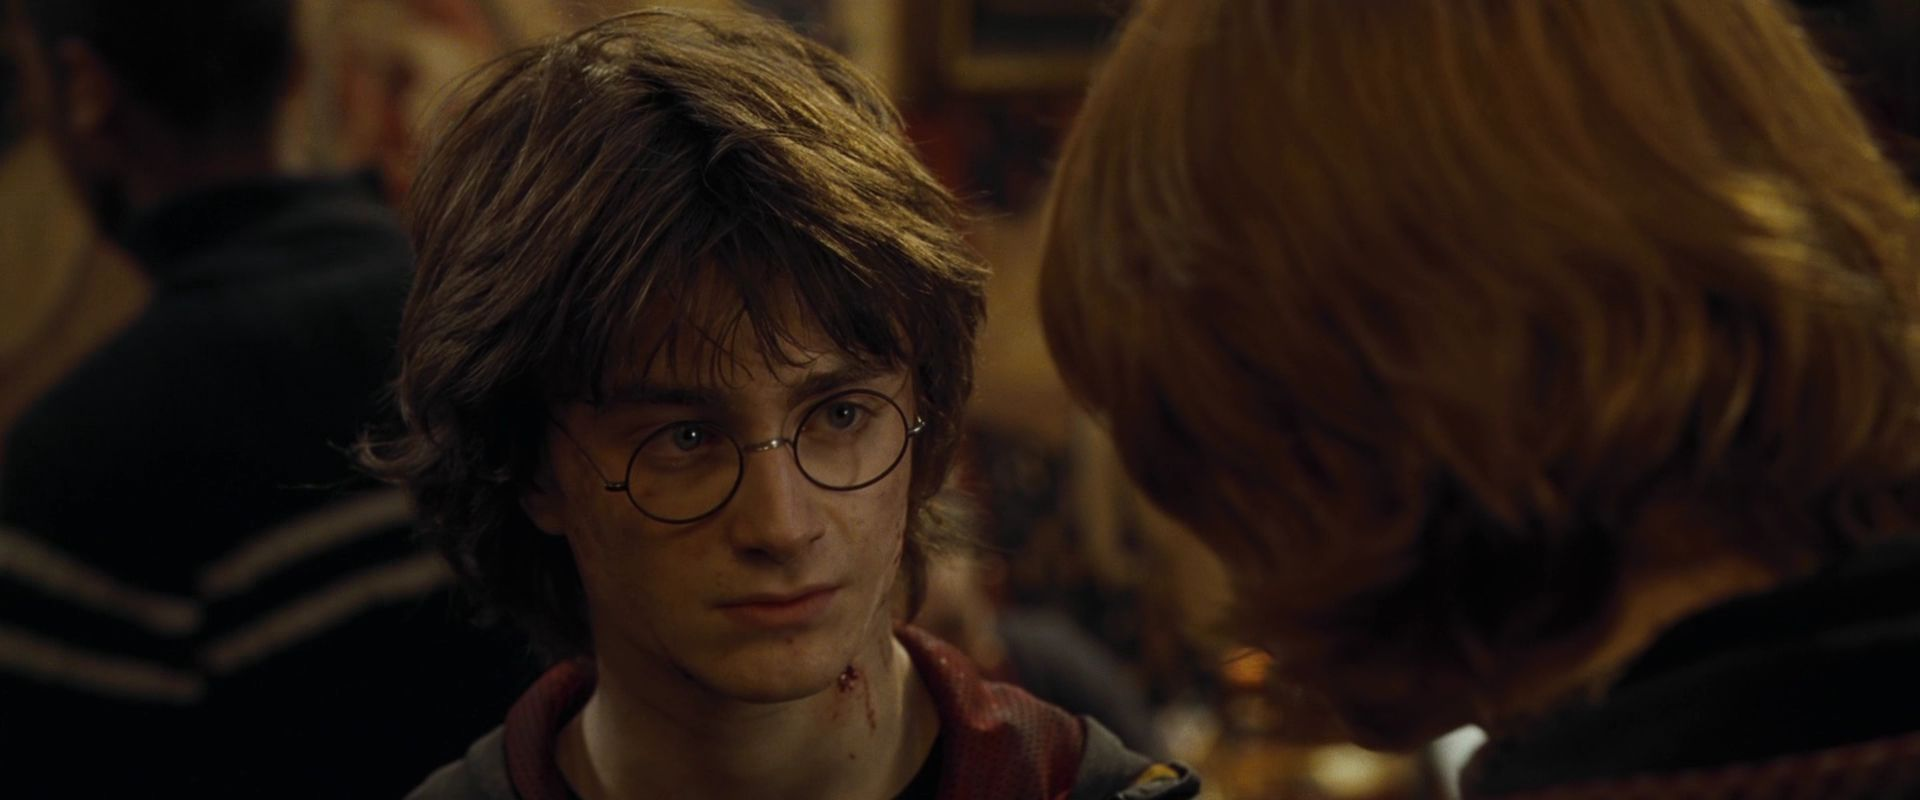 Harry Potter And The Goblet Of Fire - Harry Potter Image (17194965 ...